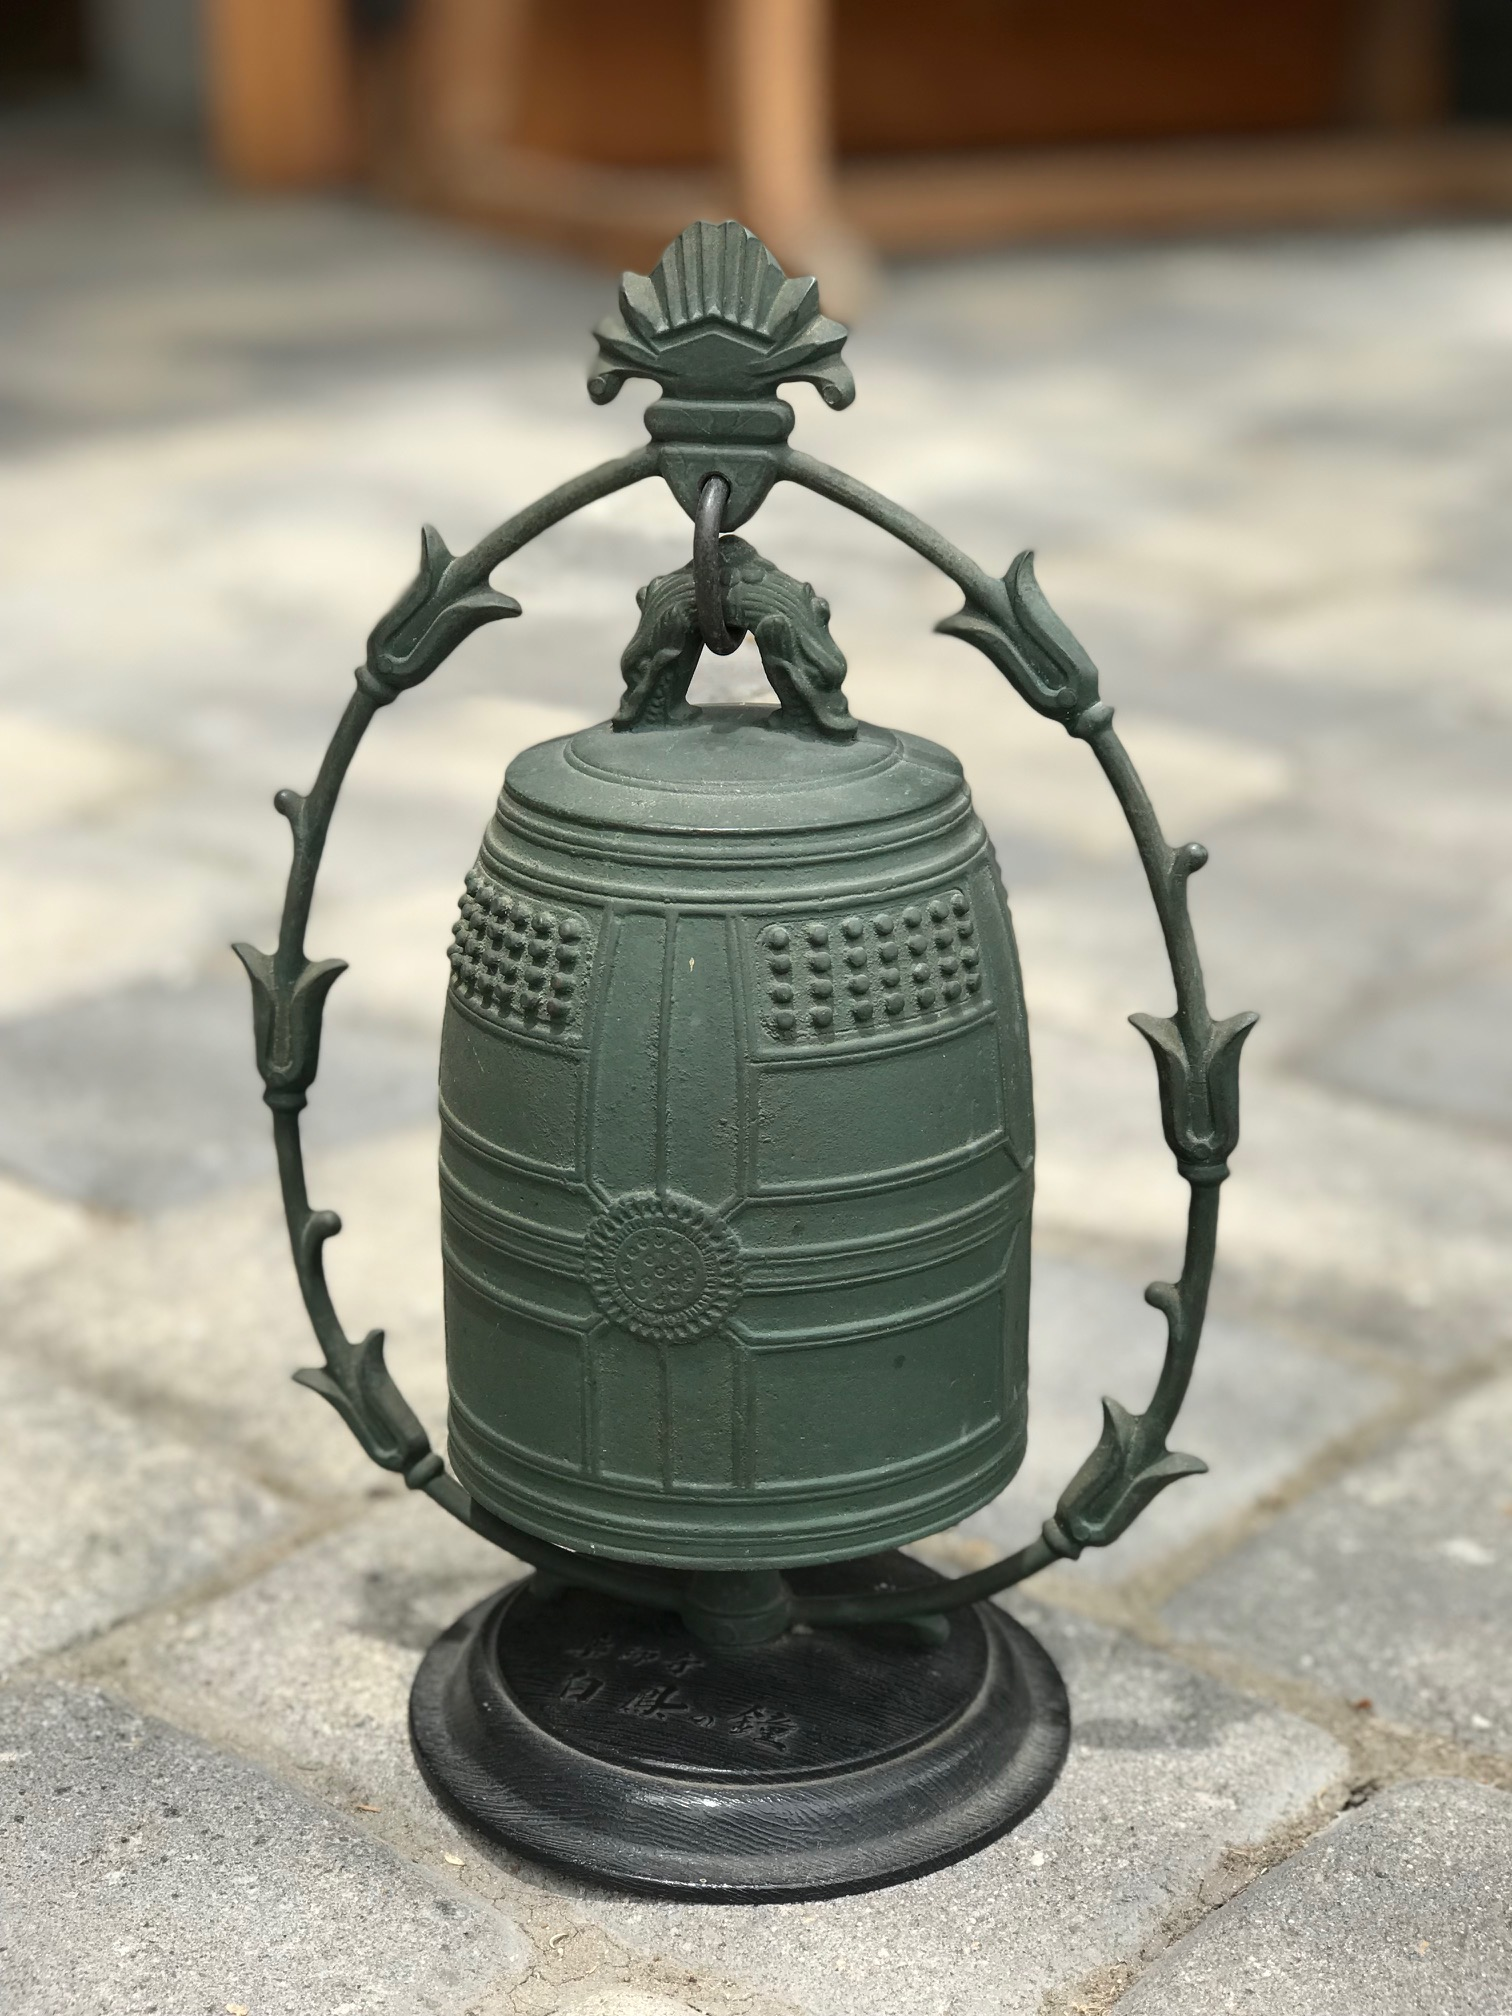 """Musical Instrument, Small Japanese Bell Gong on Bronze Wreath Motif Mount - Reproduction, Japan, contemporary, cast bronze, plastic base plate, works with an external striker, 6 1/2"""" x 4"""" (10 3/4"""" x 7"""" w/stand), $80., thedavidalancollection.com , solana beach, ca"""